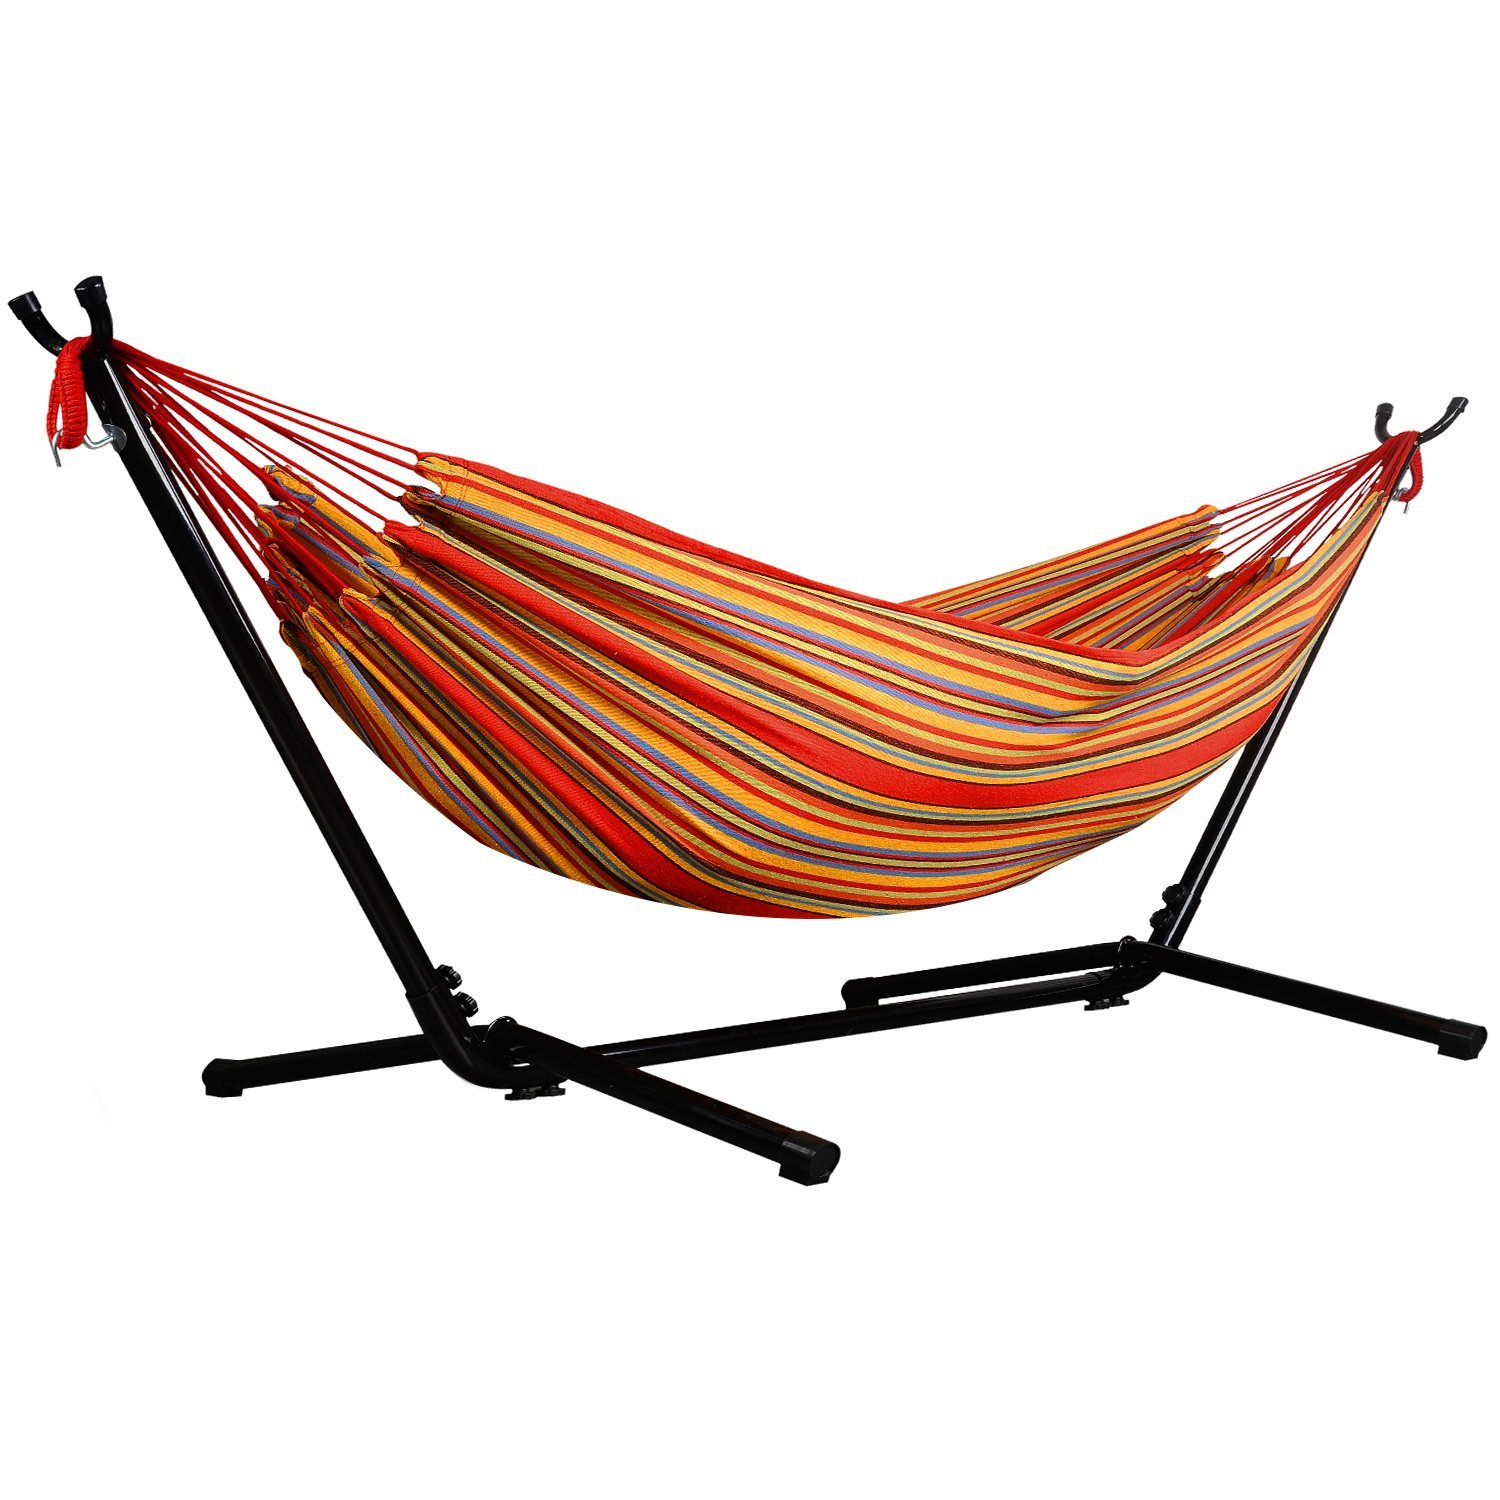 2019 Newest Print Design Cotton /Polyester Iron Hammock Stand